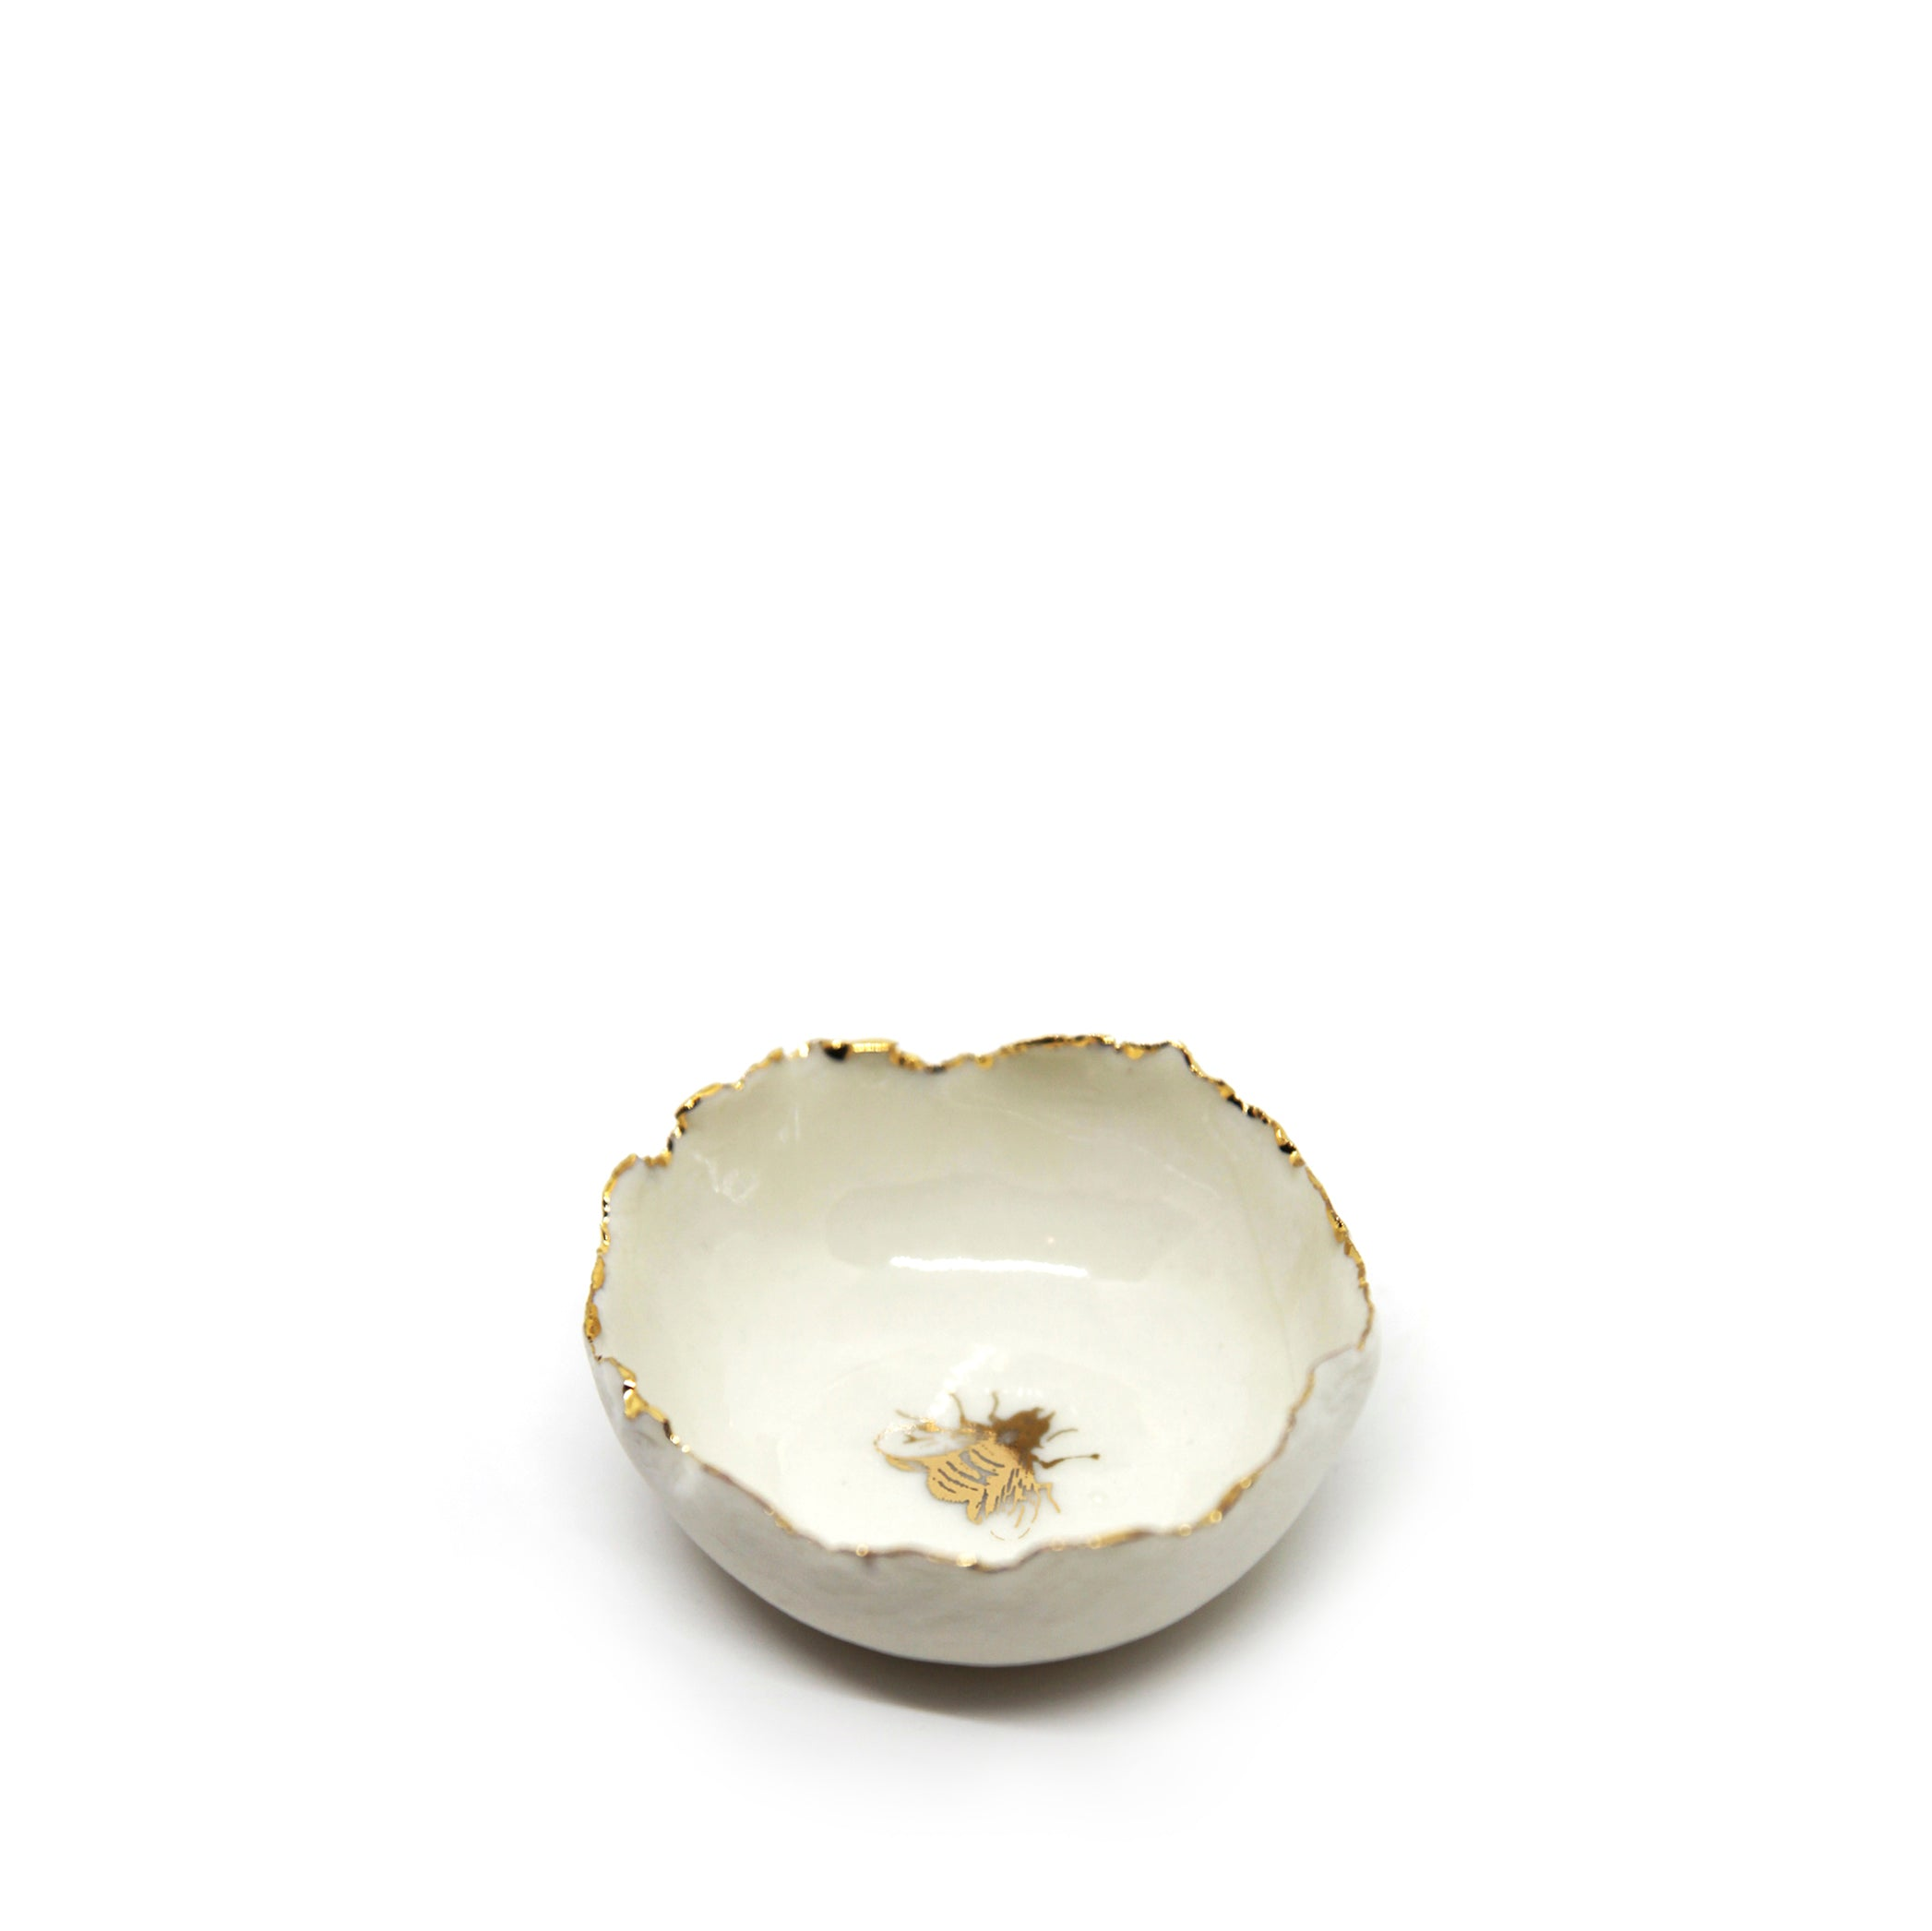 HB Jagged Bowl with Gold Bee, 7cm